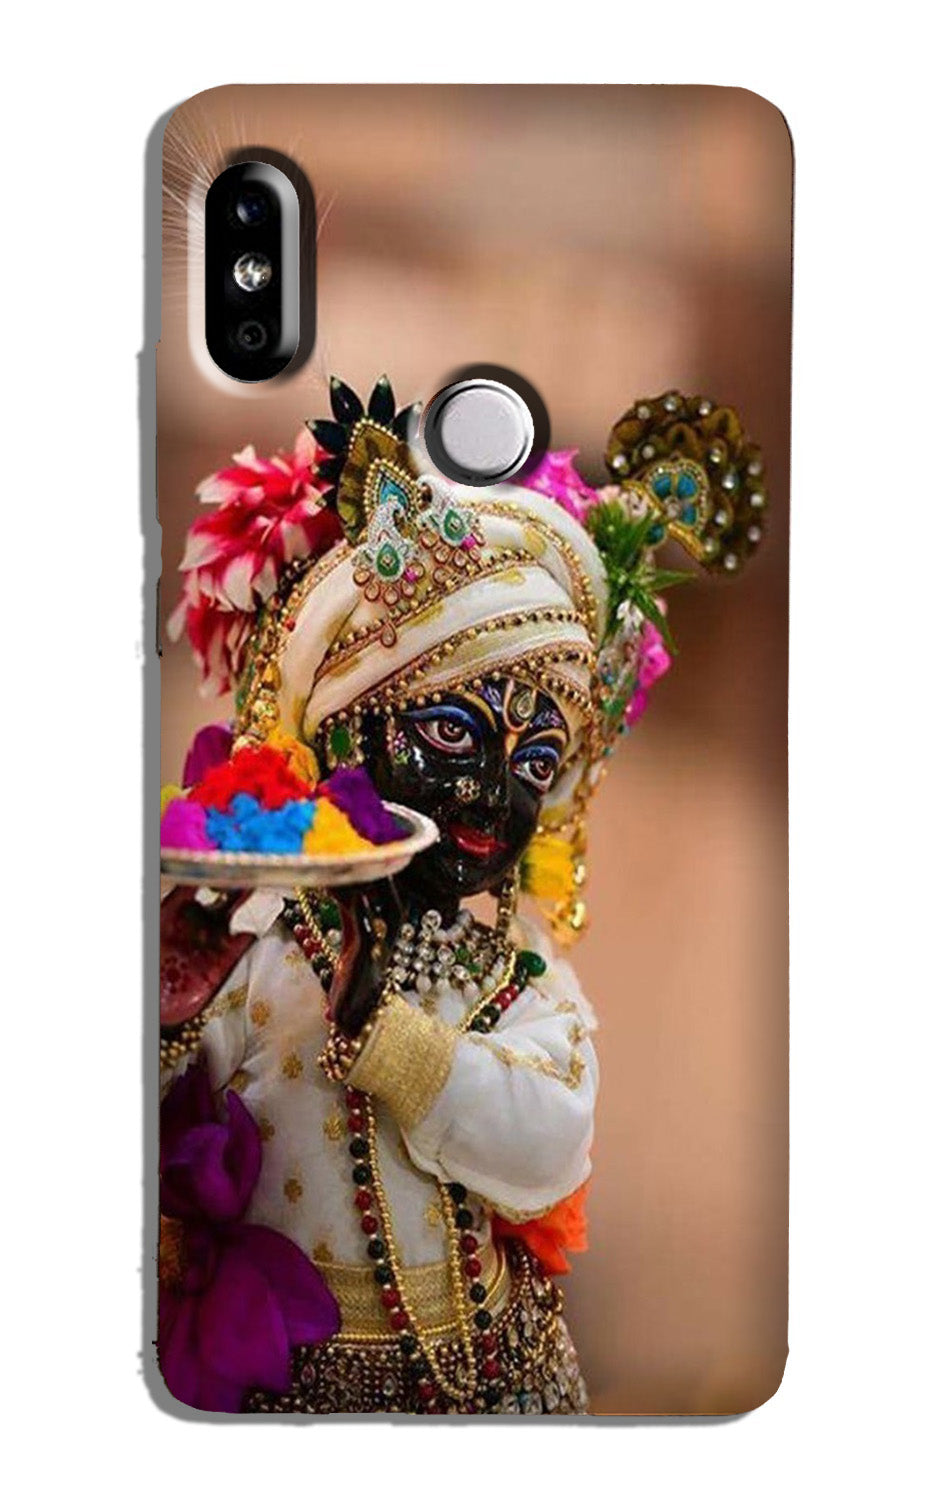 Lord Krishna2 Case for Redmi Note 6 Pro